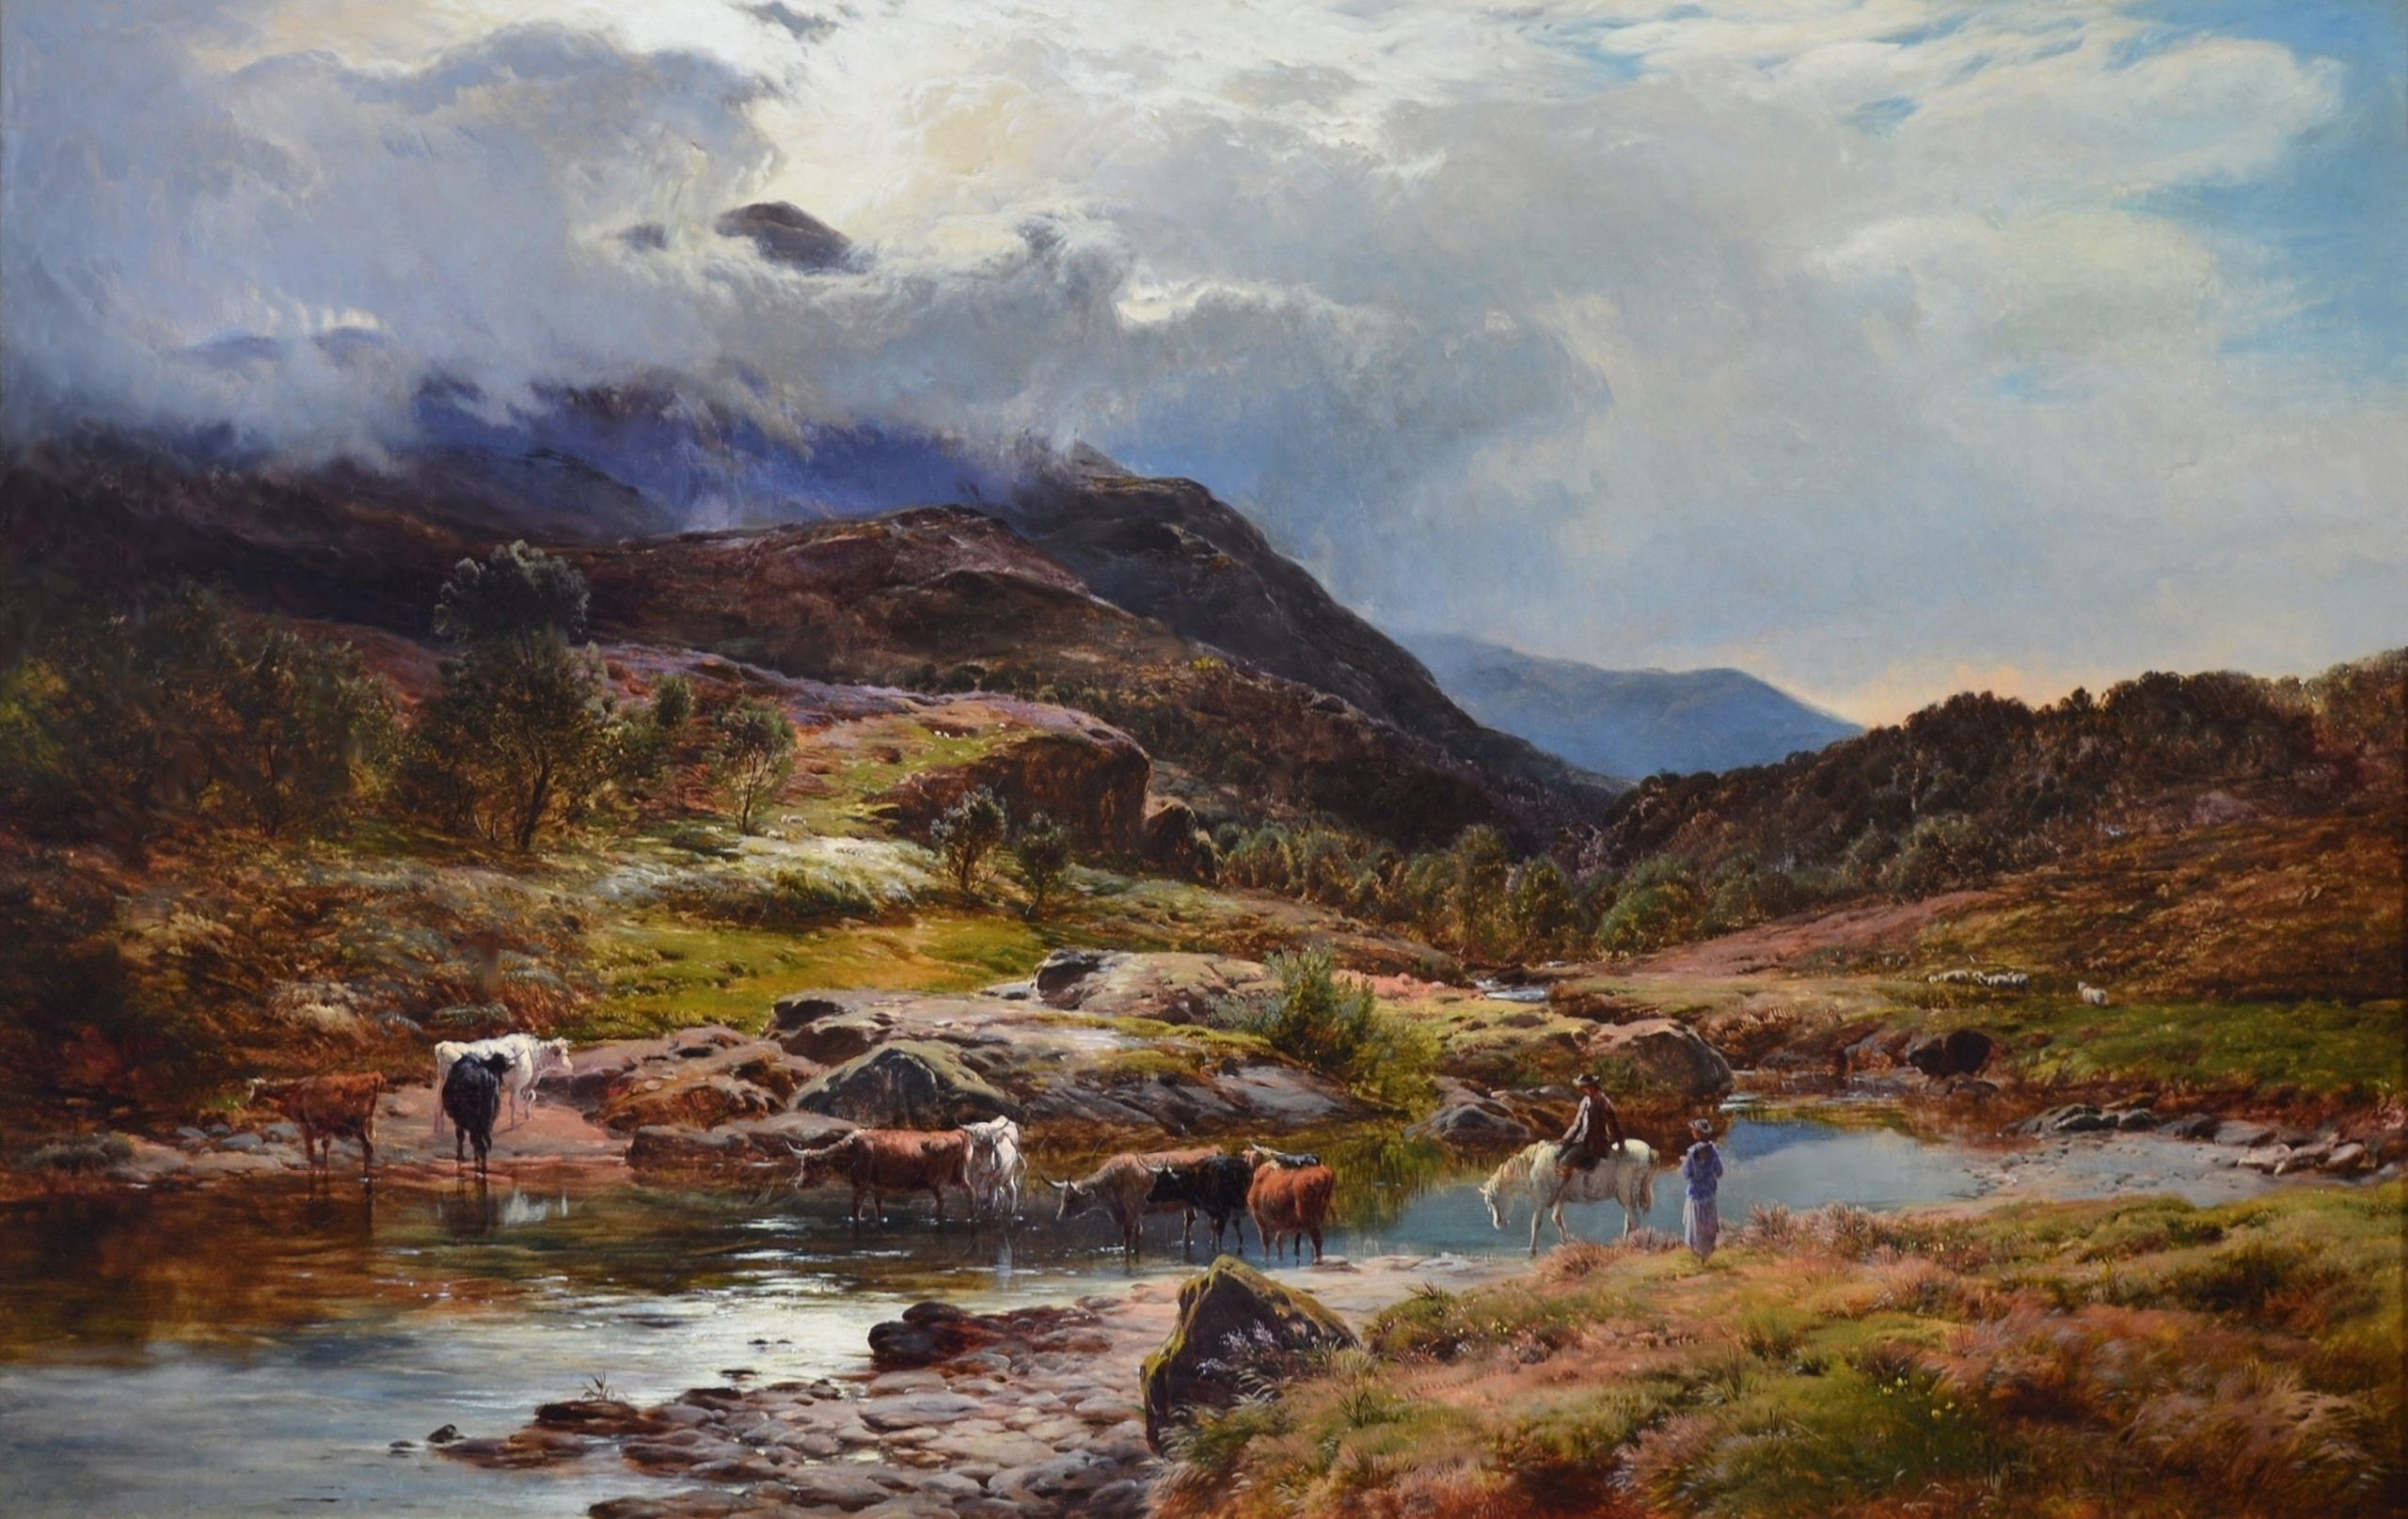 Llanberis Pass, North Wales - Large 19th Century Exhibition Oil Painting Image